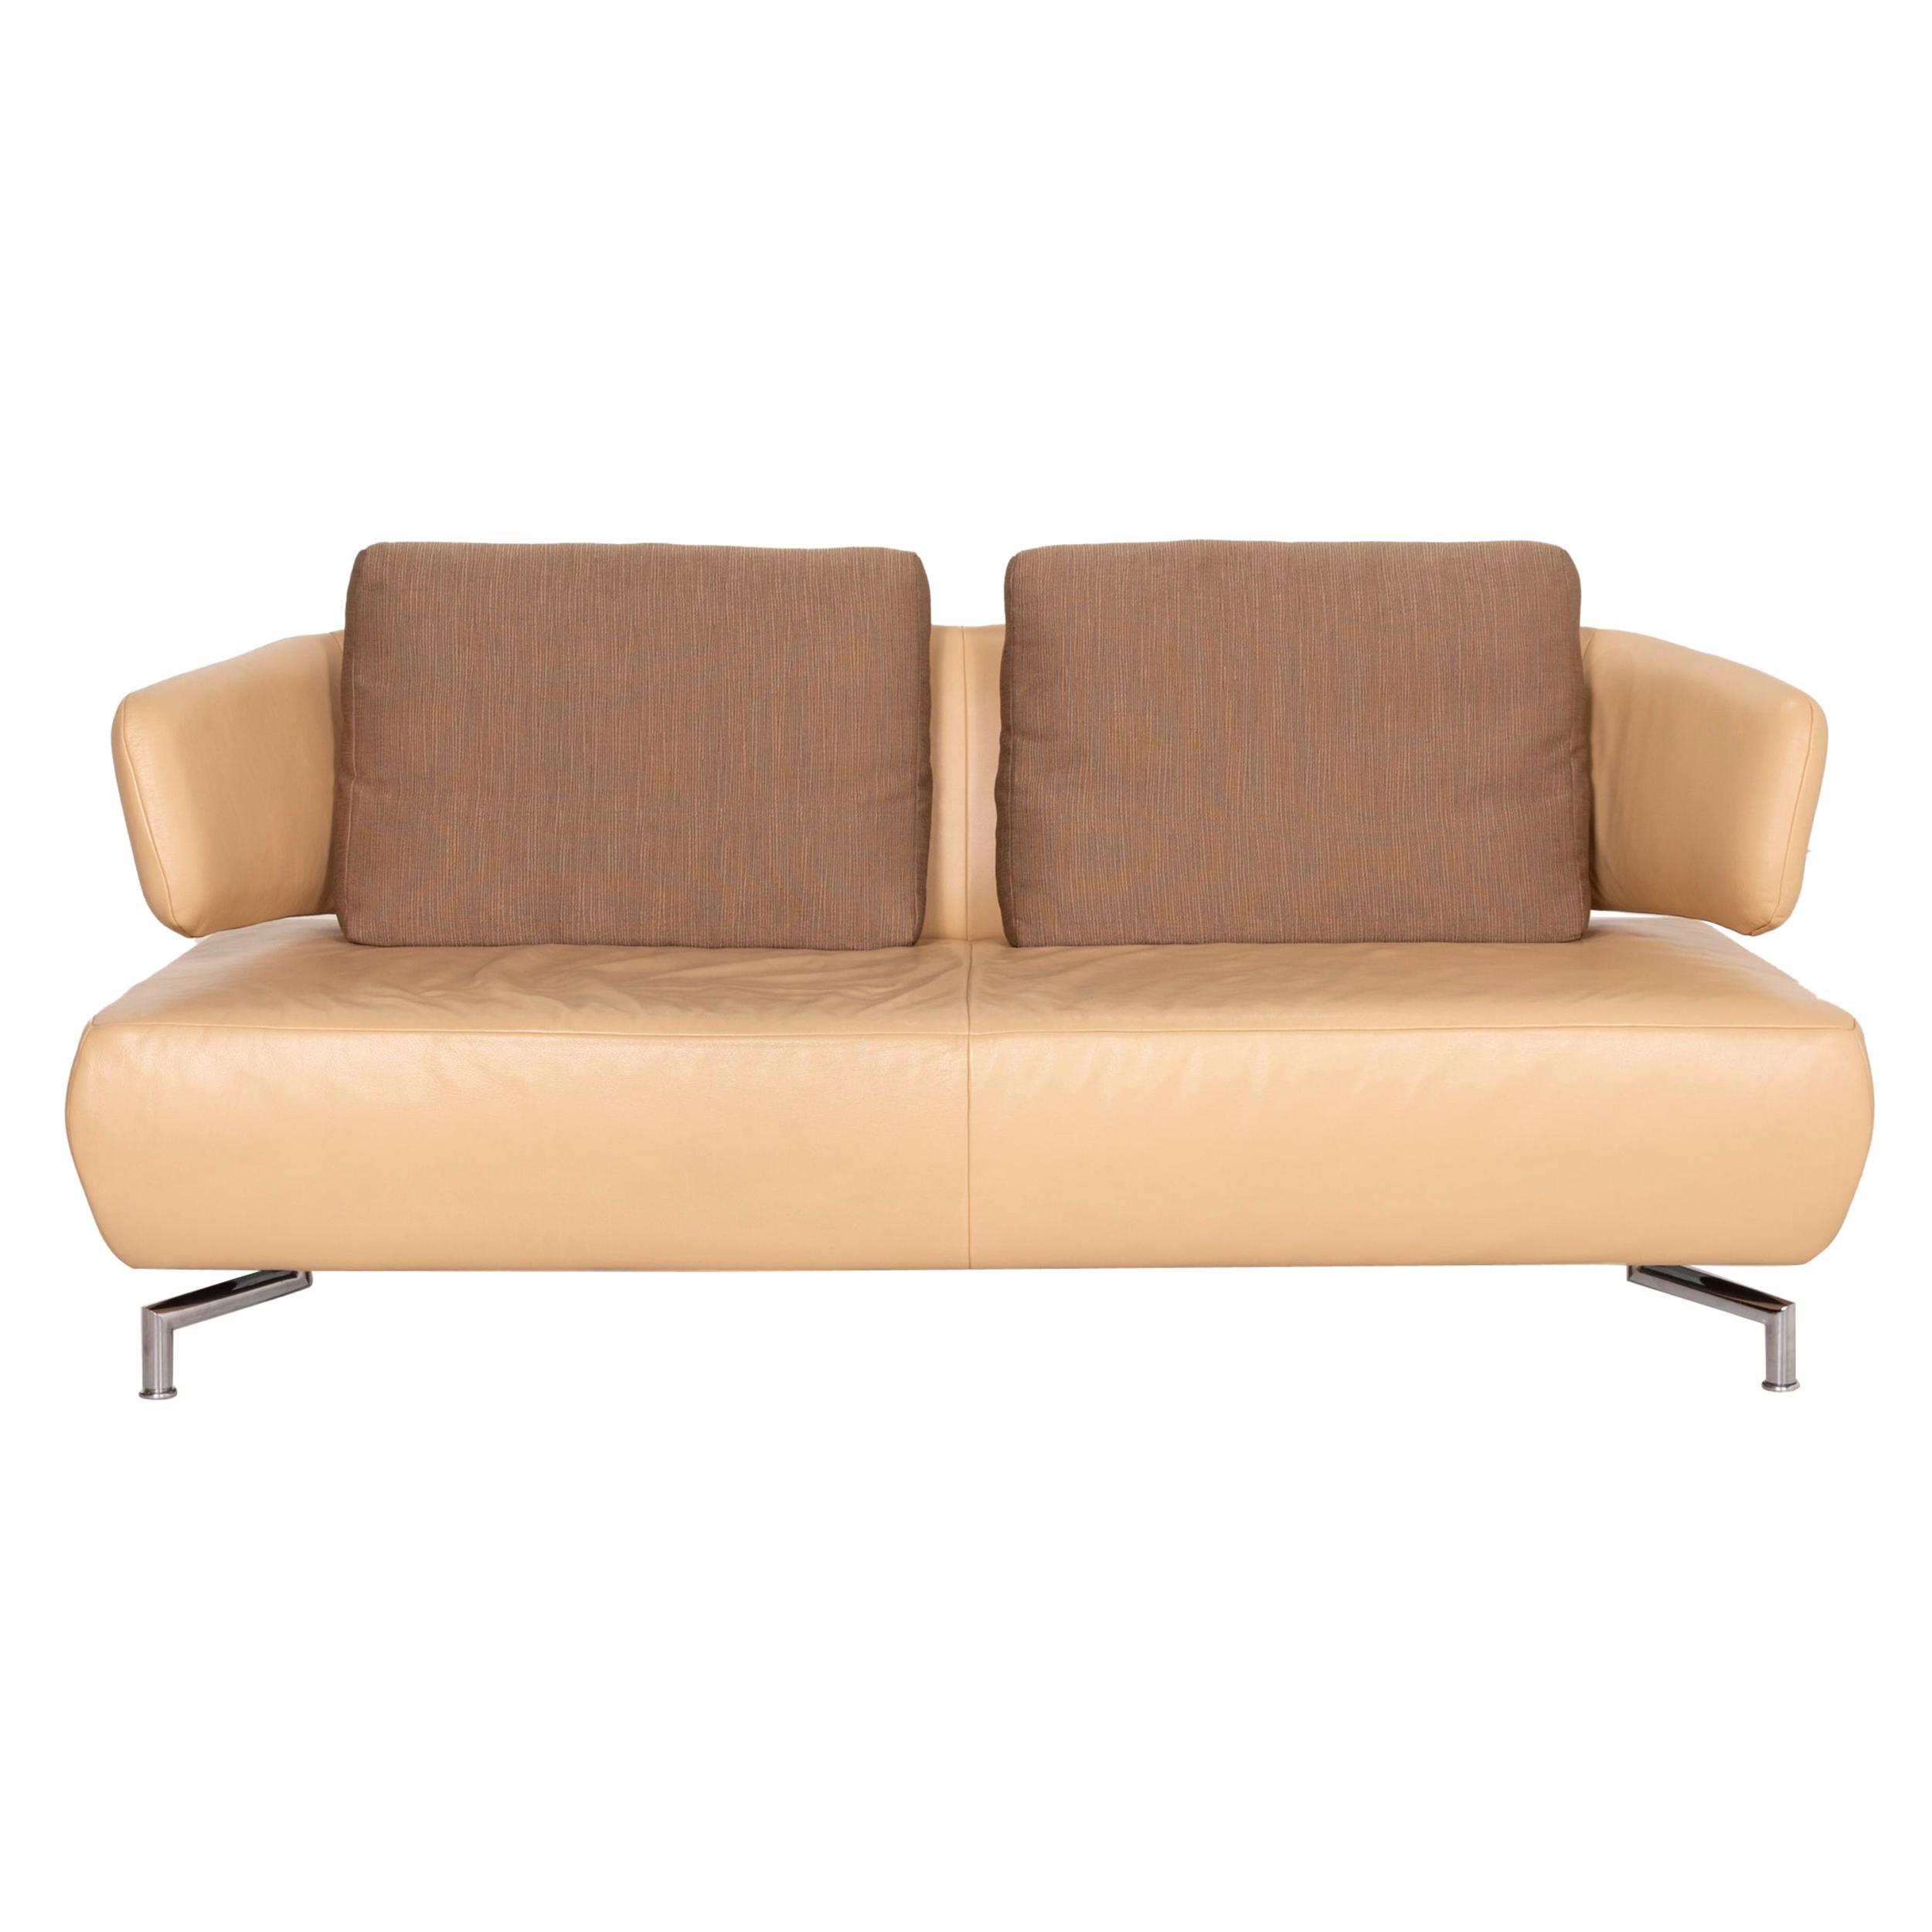 Koinor Leather Sofa Beige Two-Seater Fabric